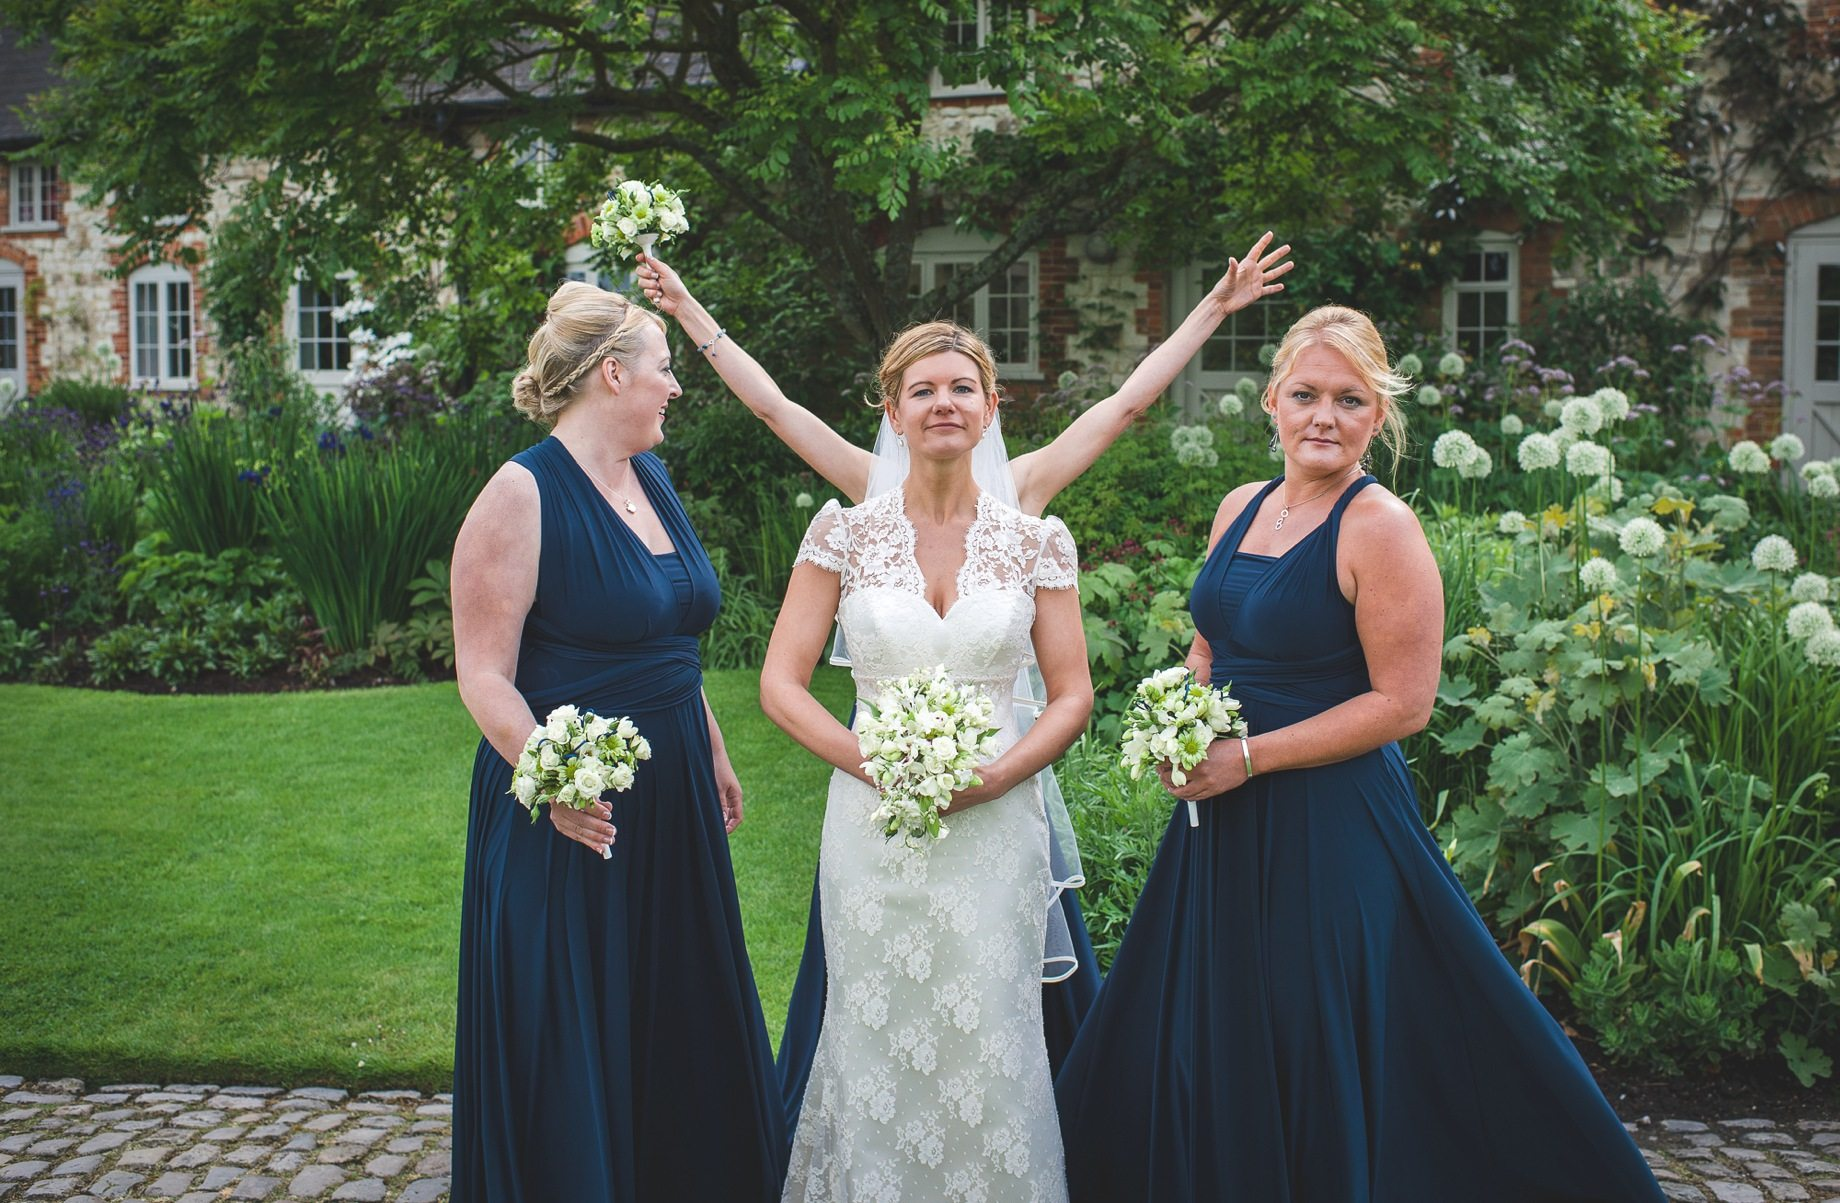 86Best Wedding Photography Guy Collier